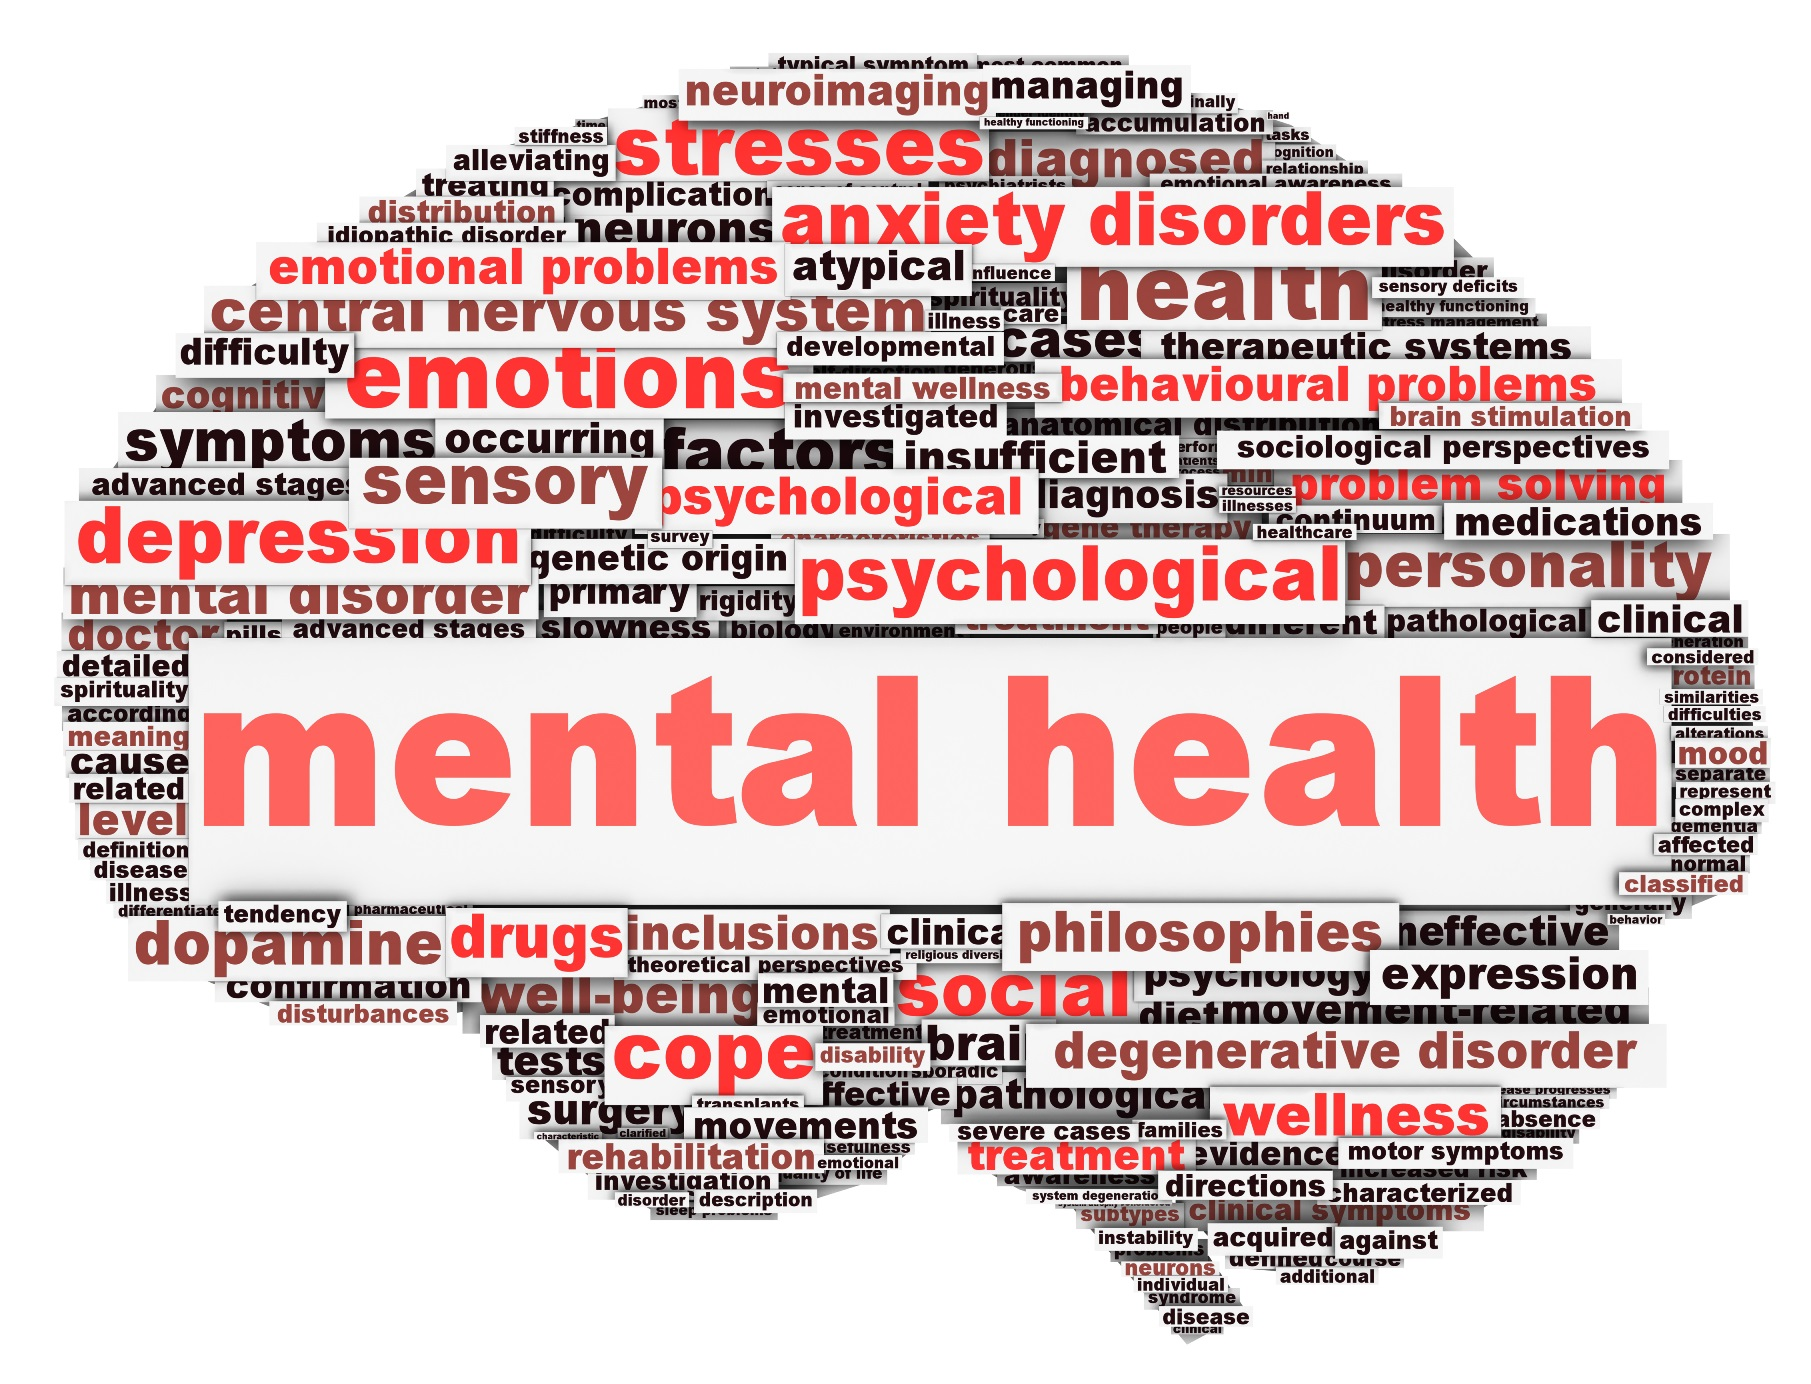 Awesome Mental Health Essays: Interesting Topics That Can Be Developed